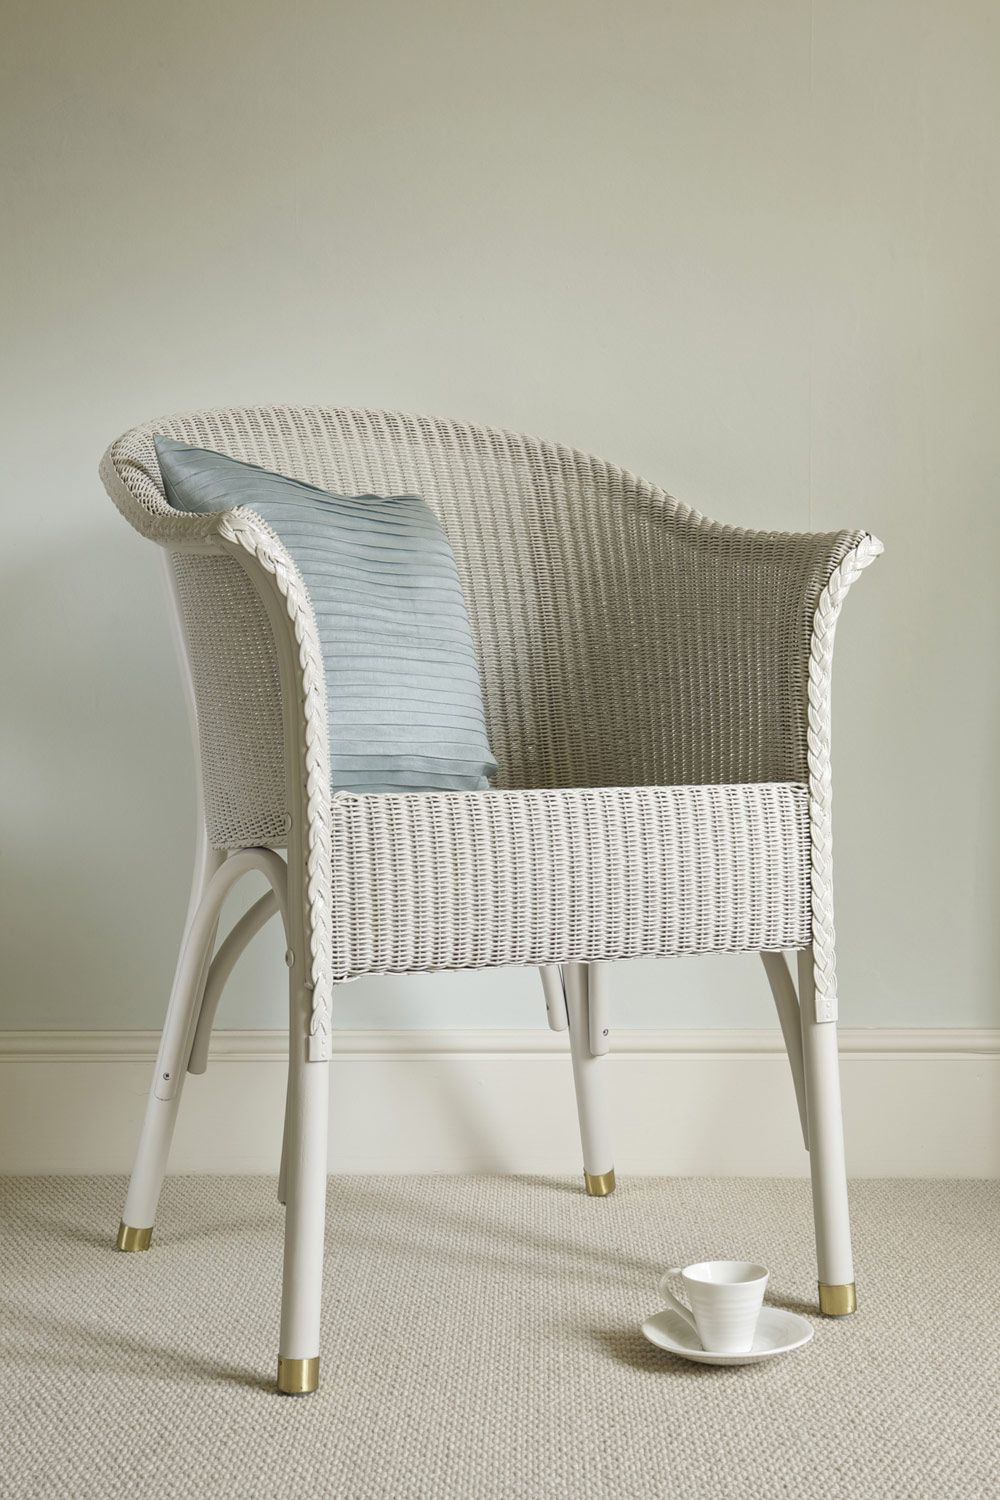 Colourful accent chairs - Find This Pin And More On Ghost White Chairs